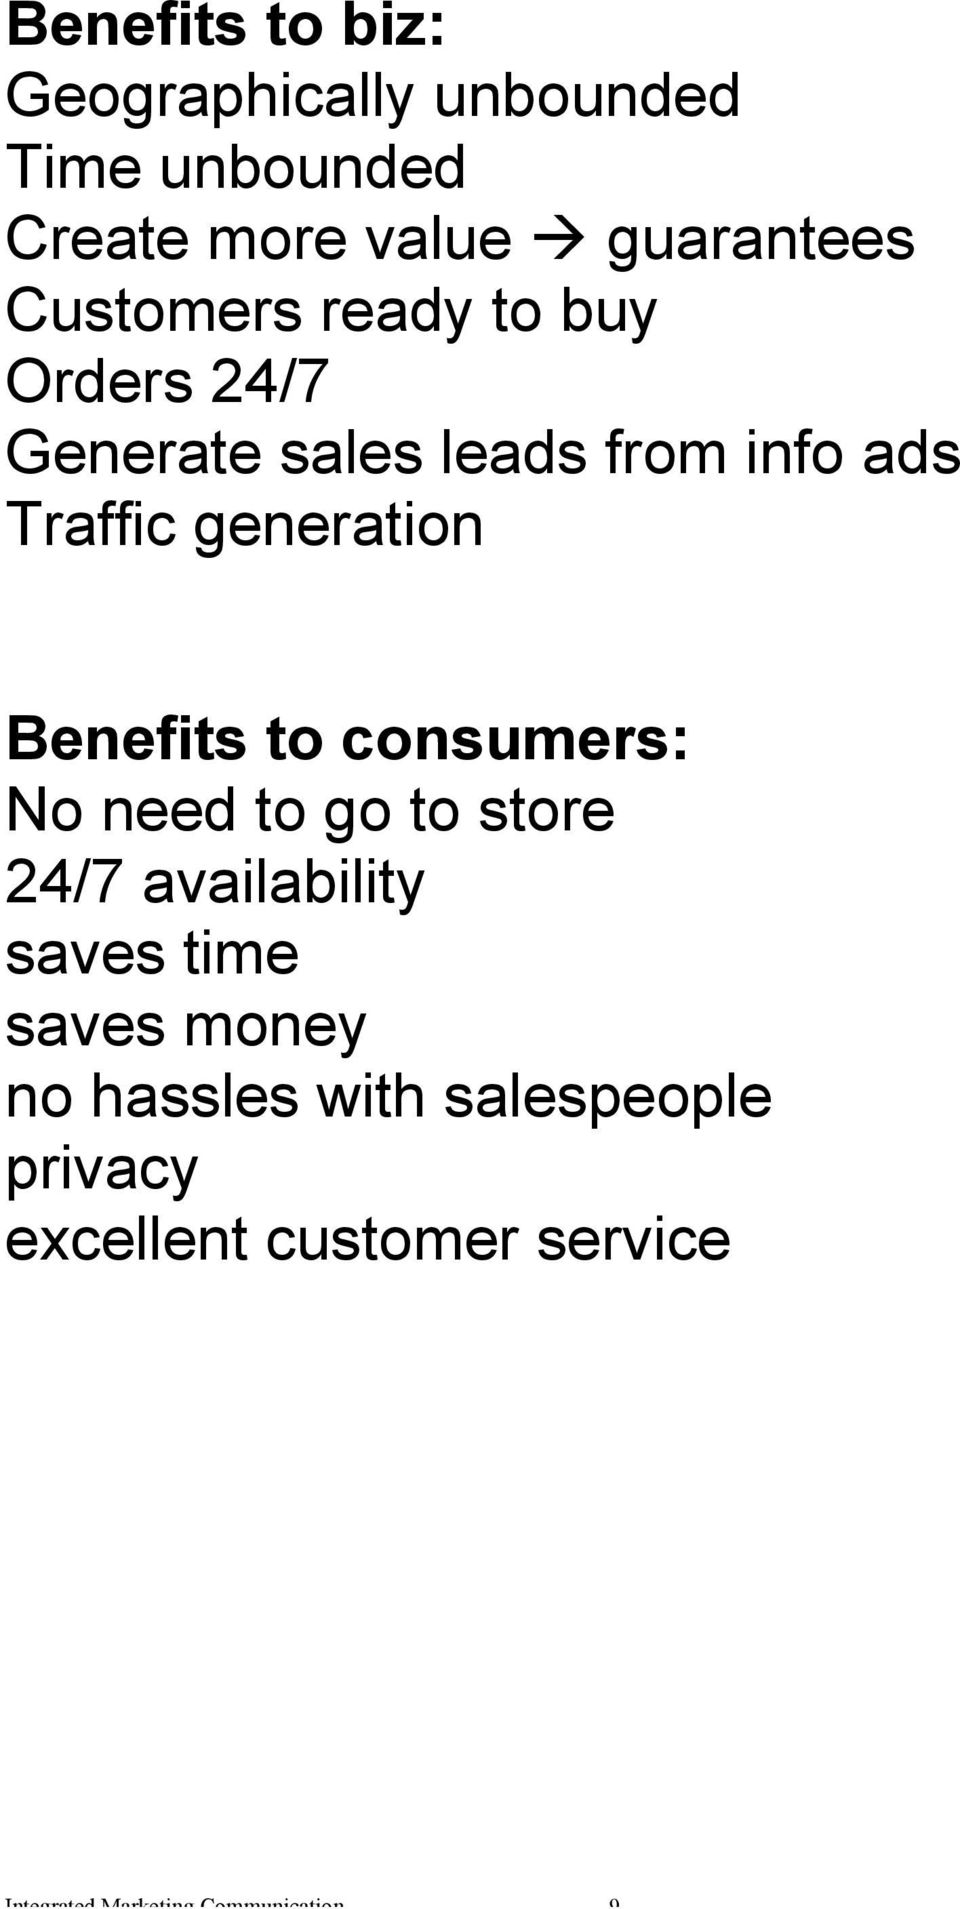 Benefits to consumers: No need to go to store 24/7 availability saves time saves money no